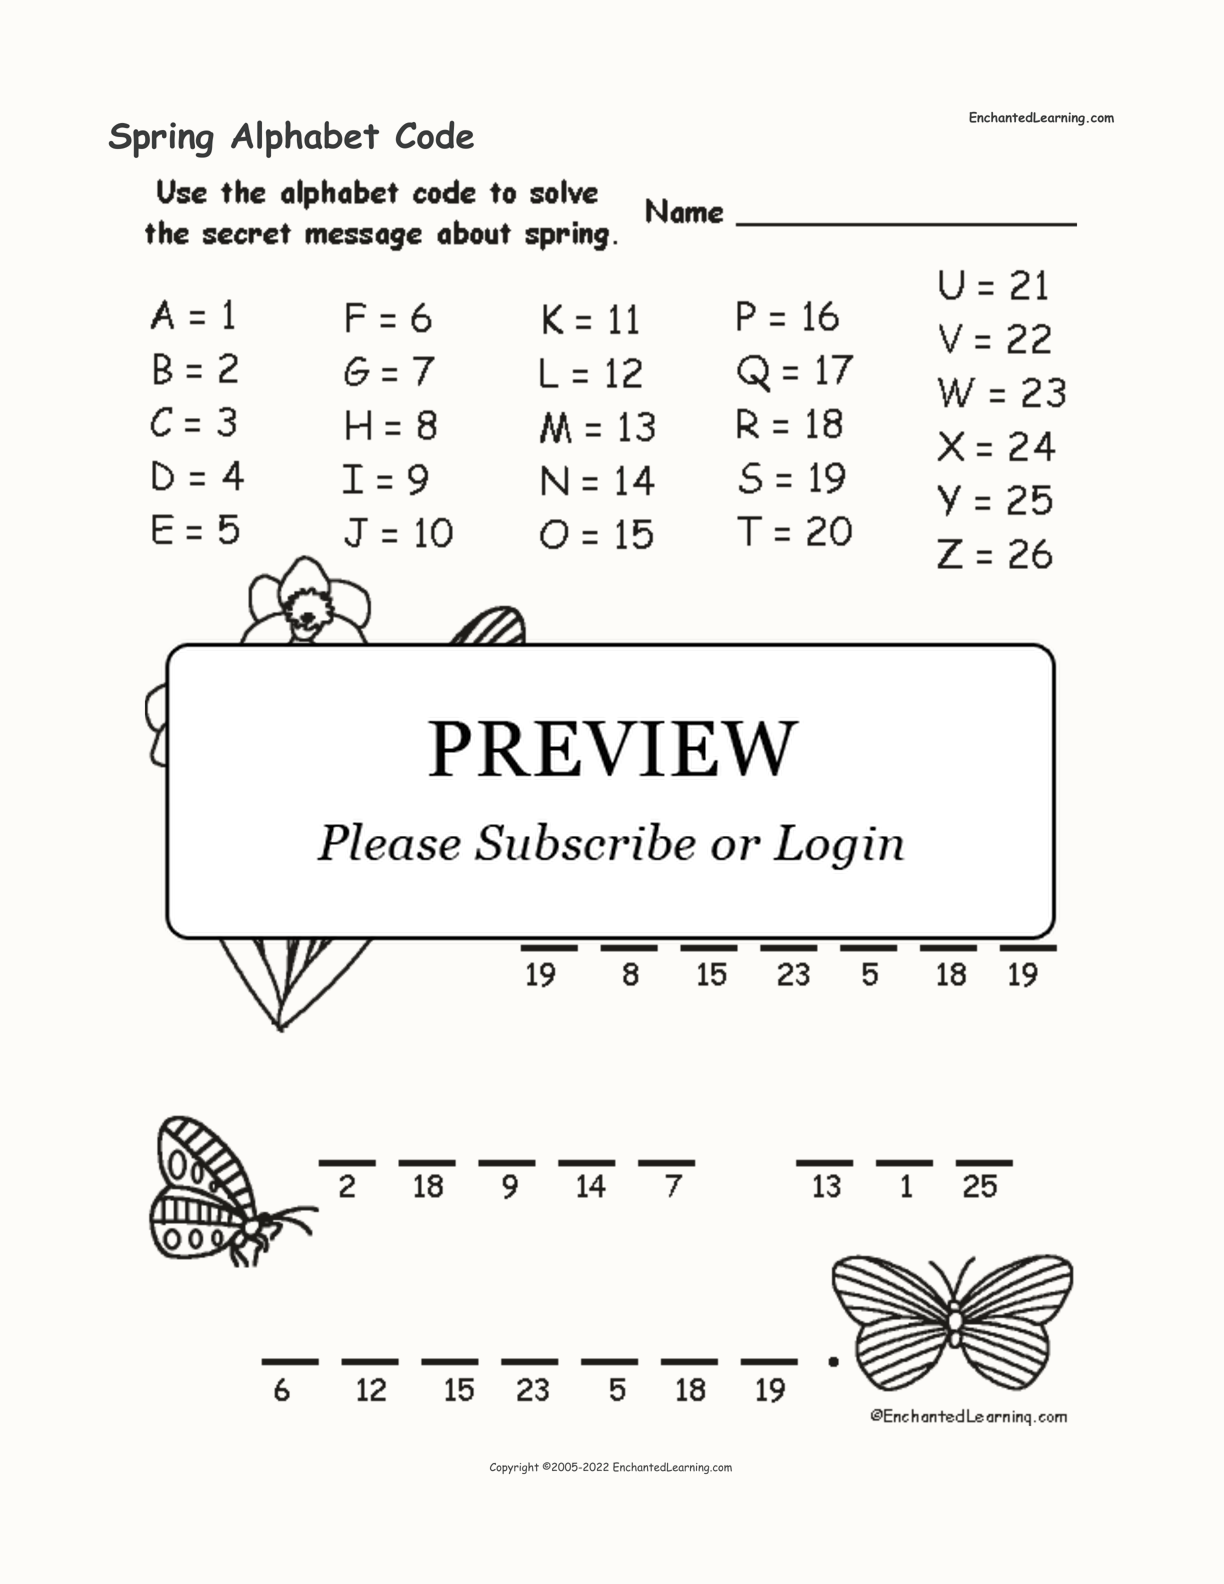 Spring Alphabet Code interactive worksheet page 1